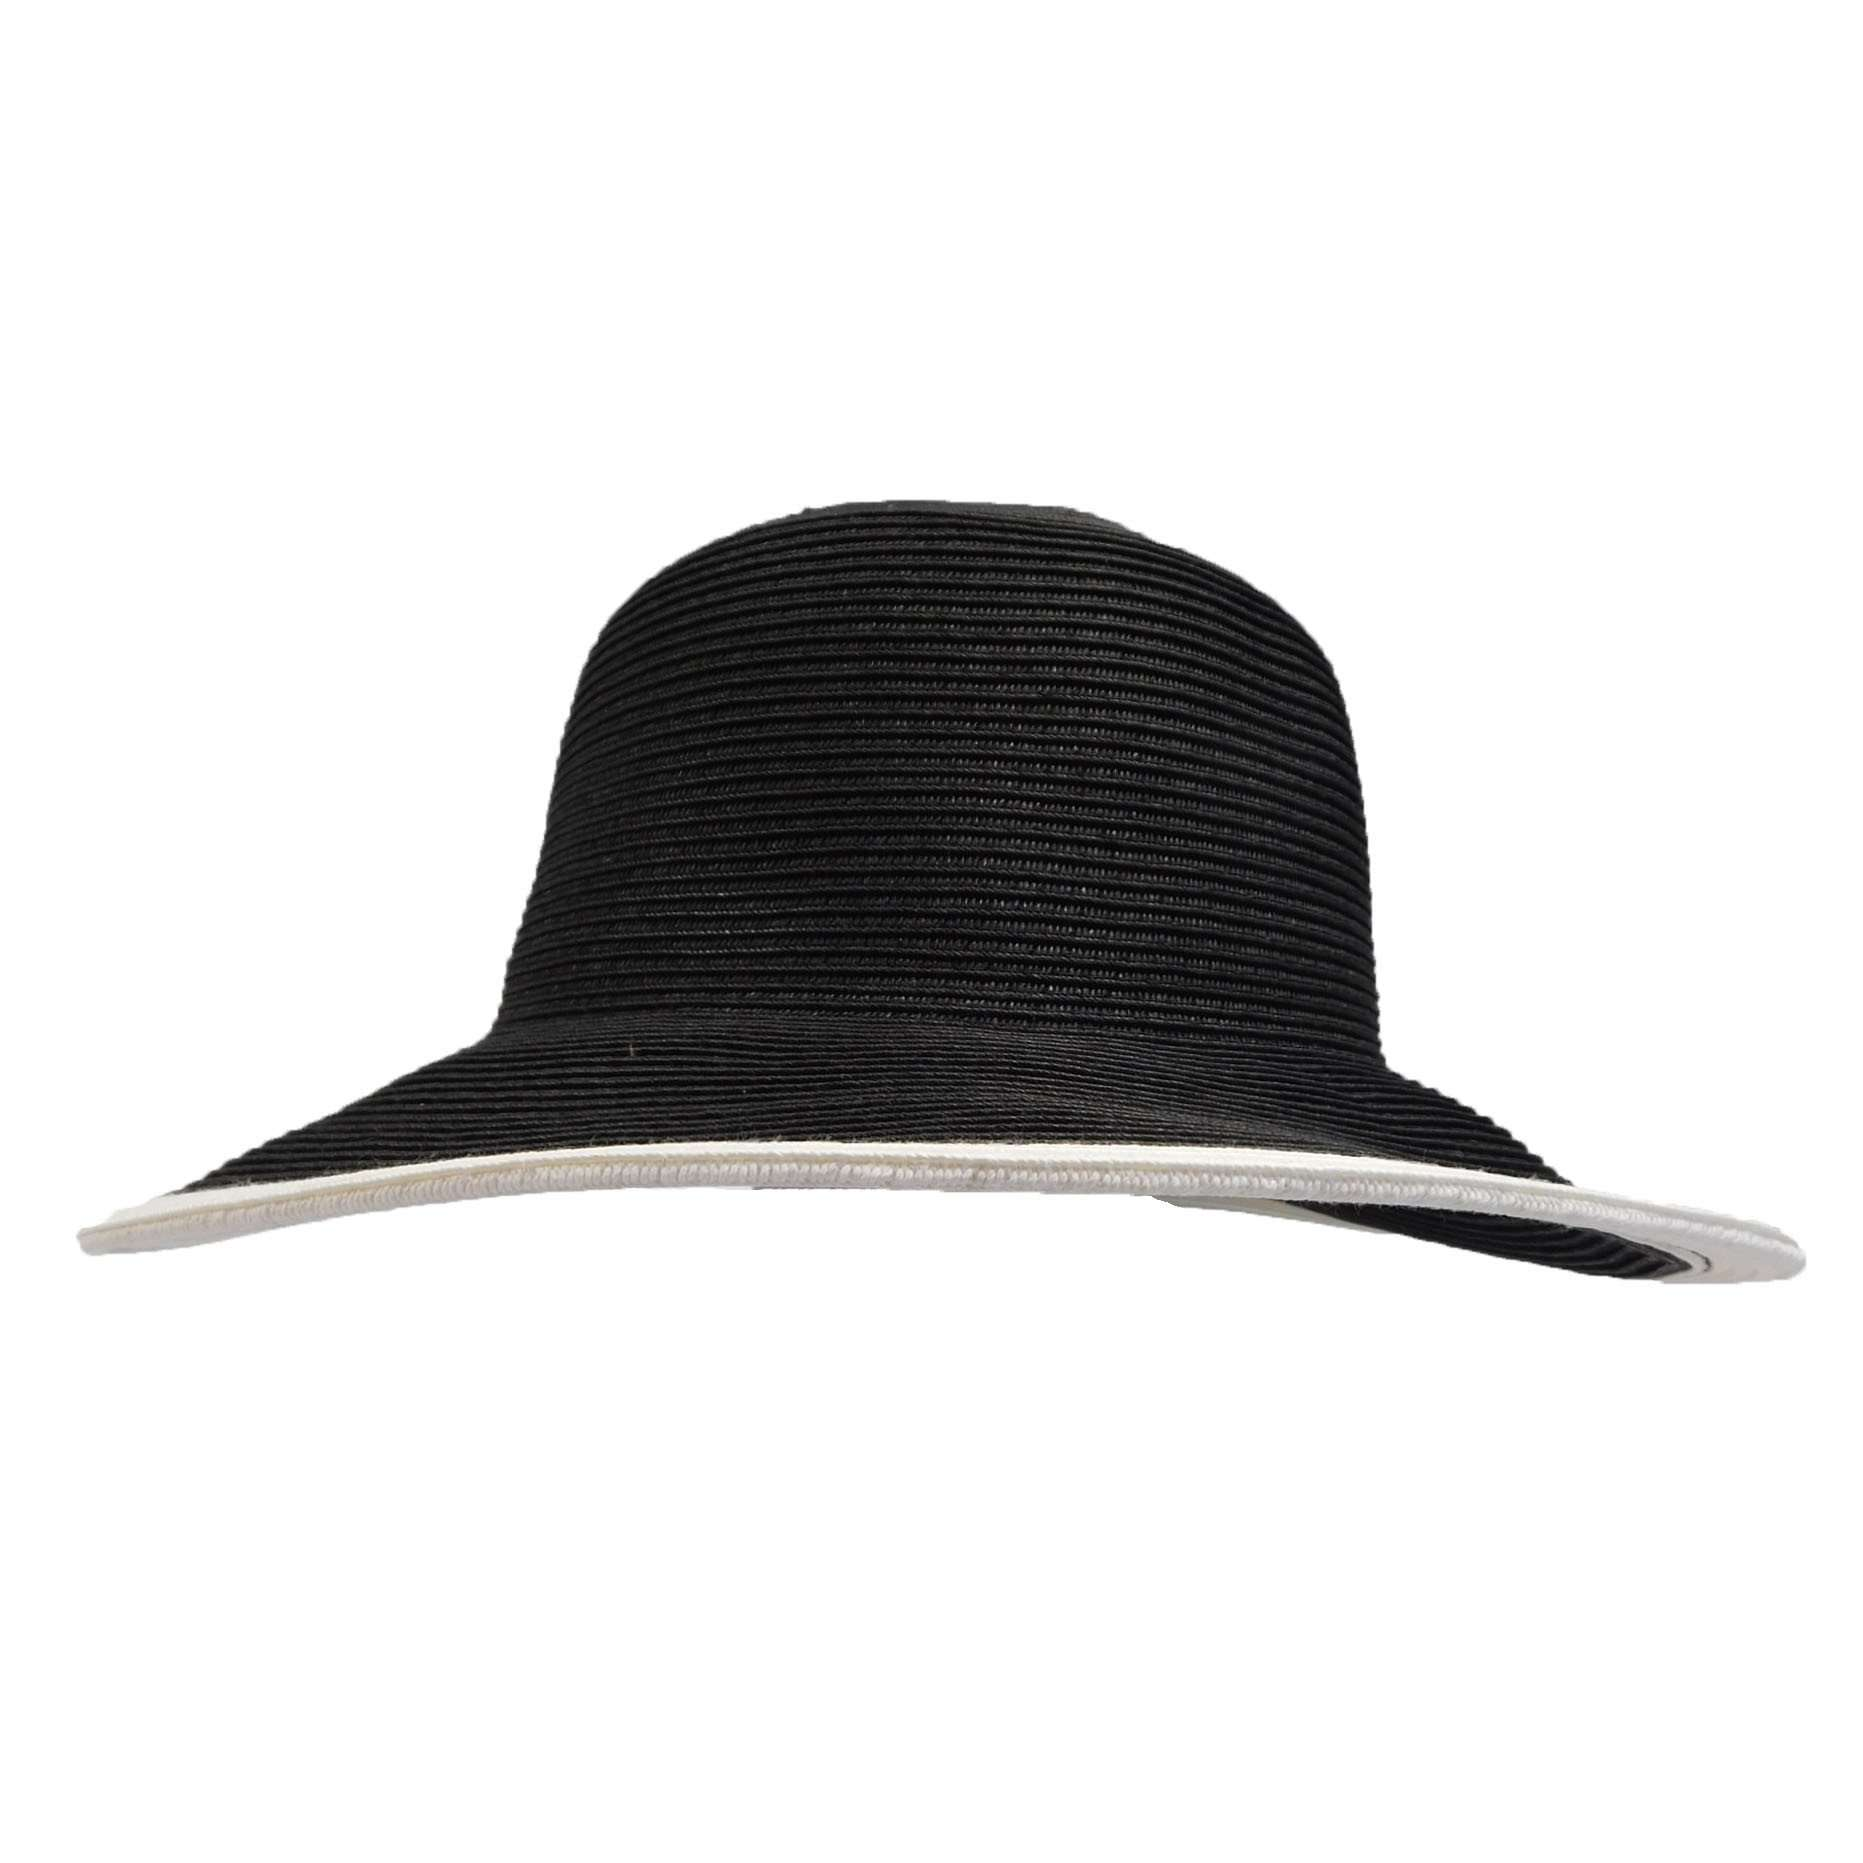 961f76f7f51 Black and White Sun Hat with Bow